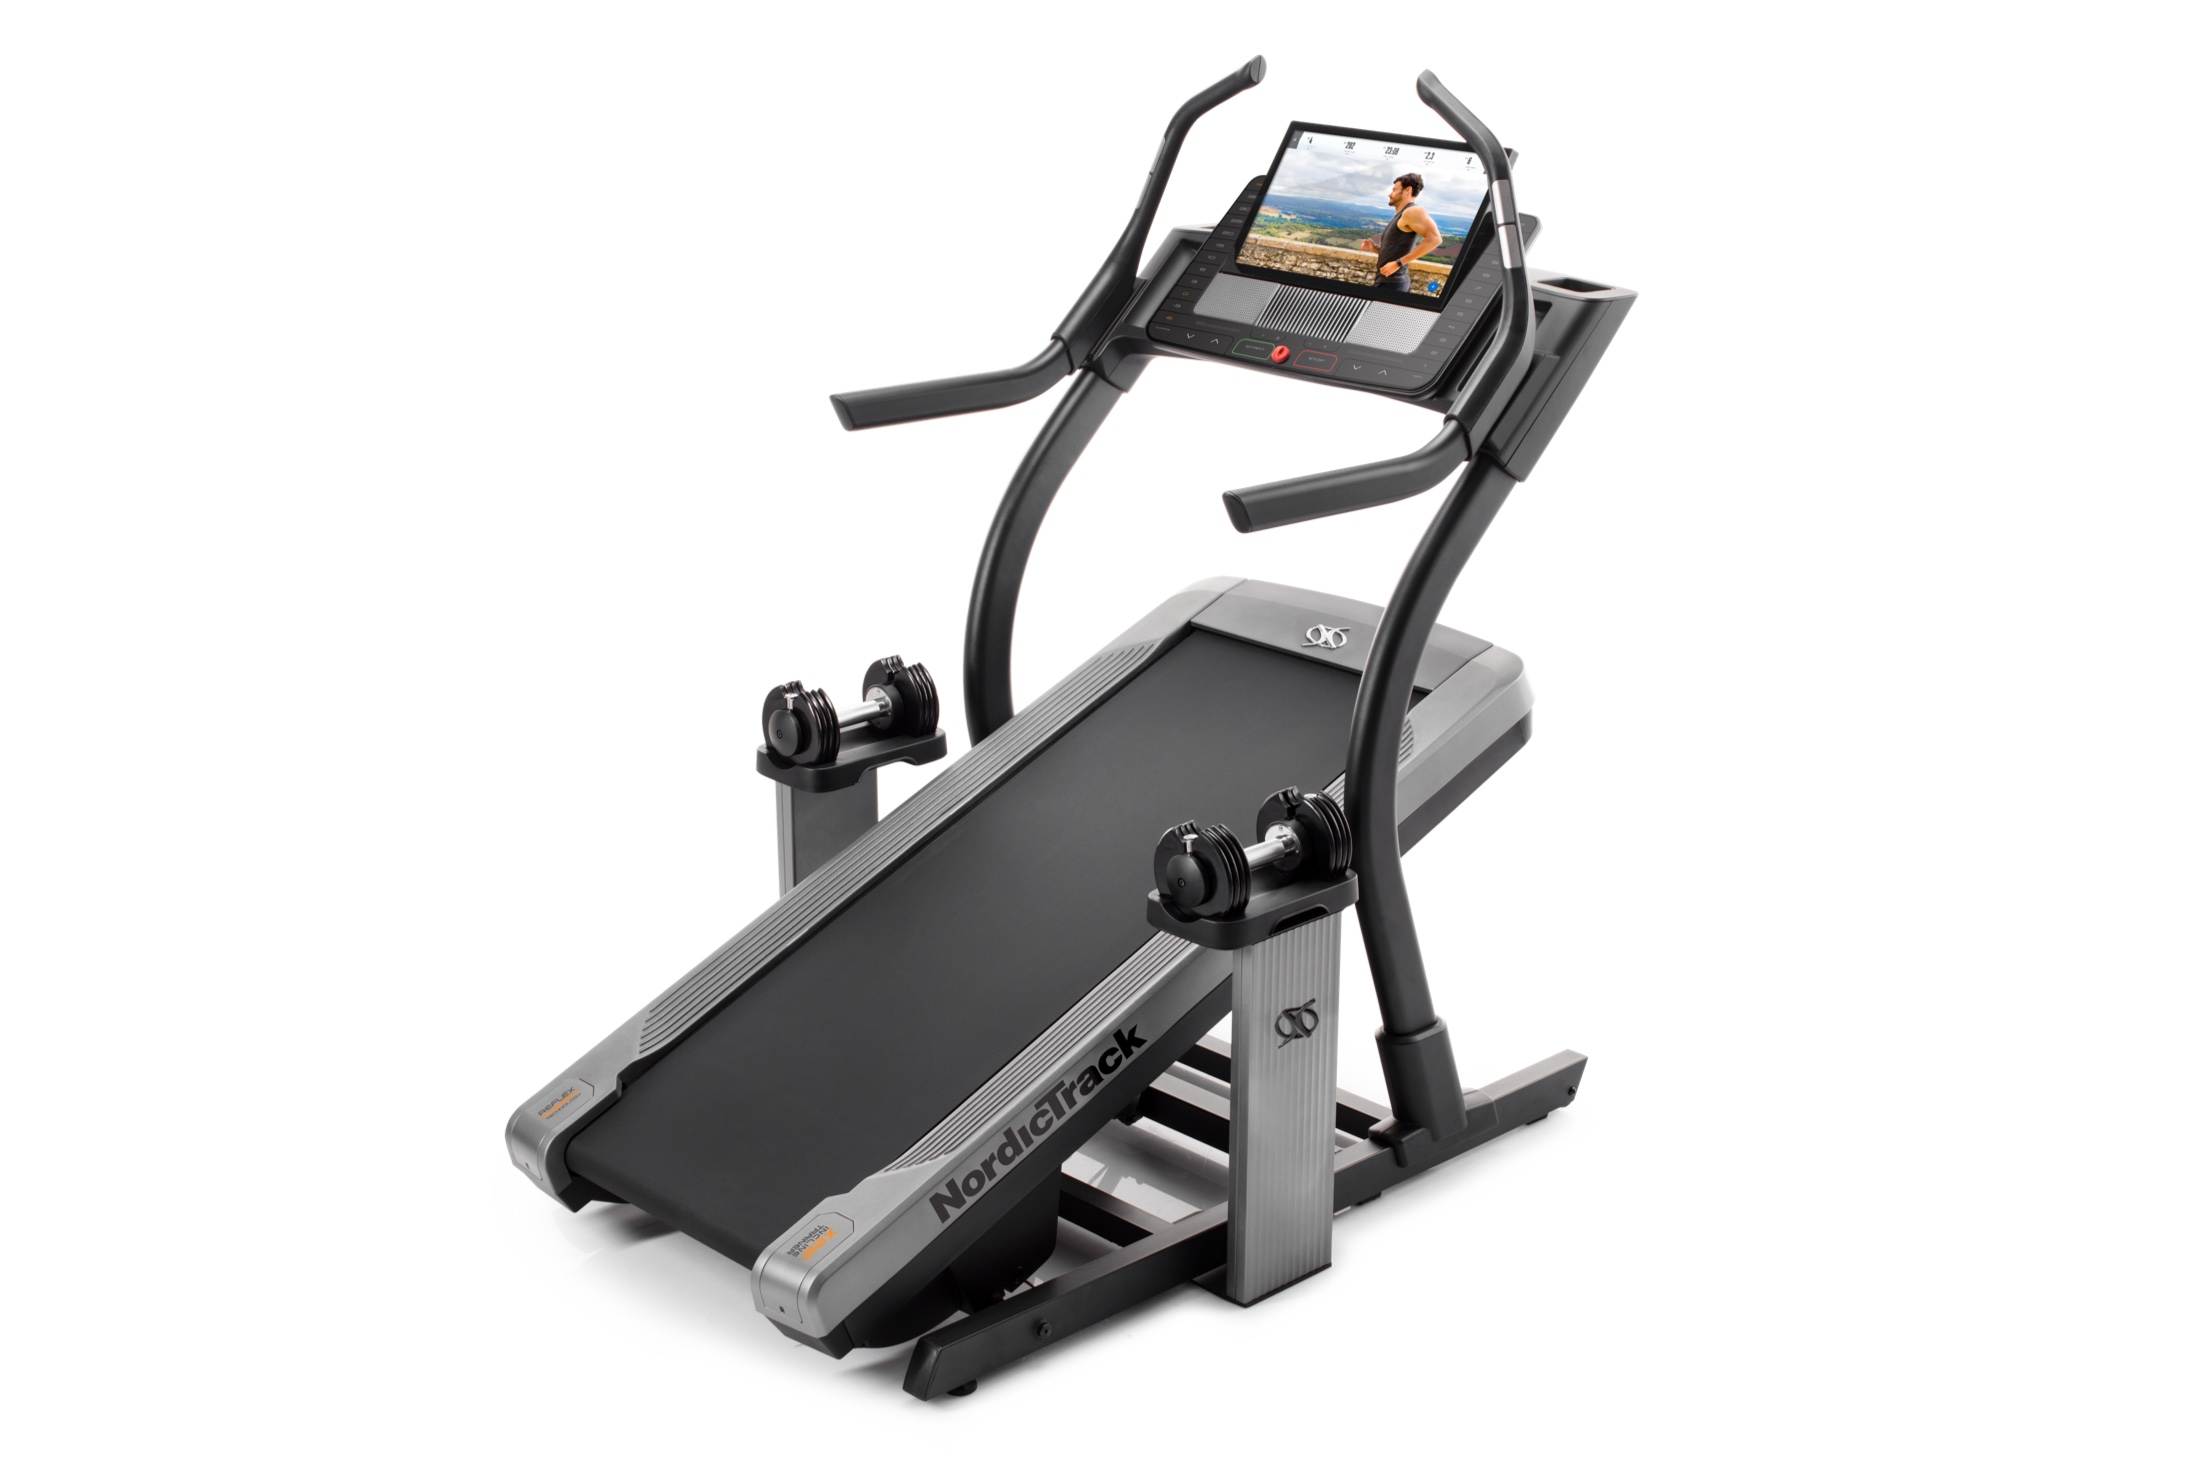 Nordictrack Cross Trainer >> NordicTrack X22i Incline Trainer Treadmill | NordicTrack